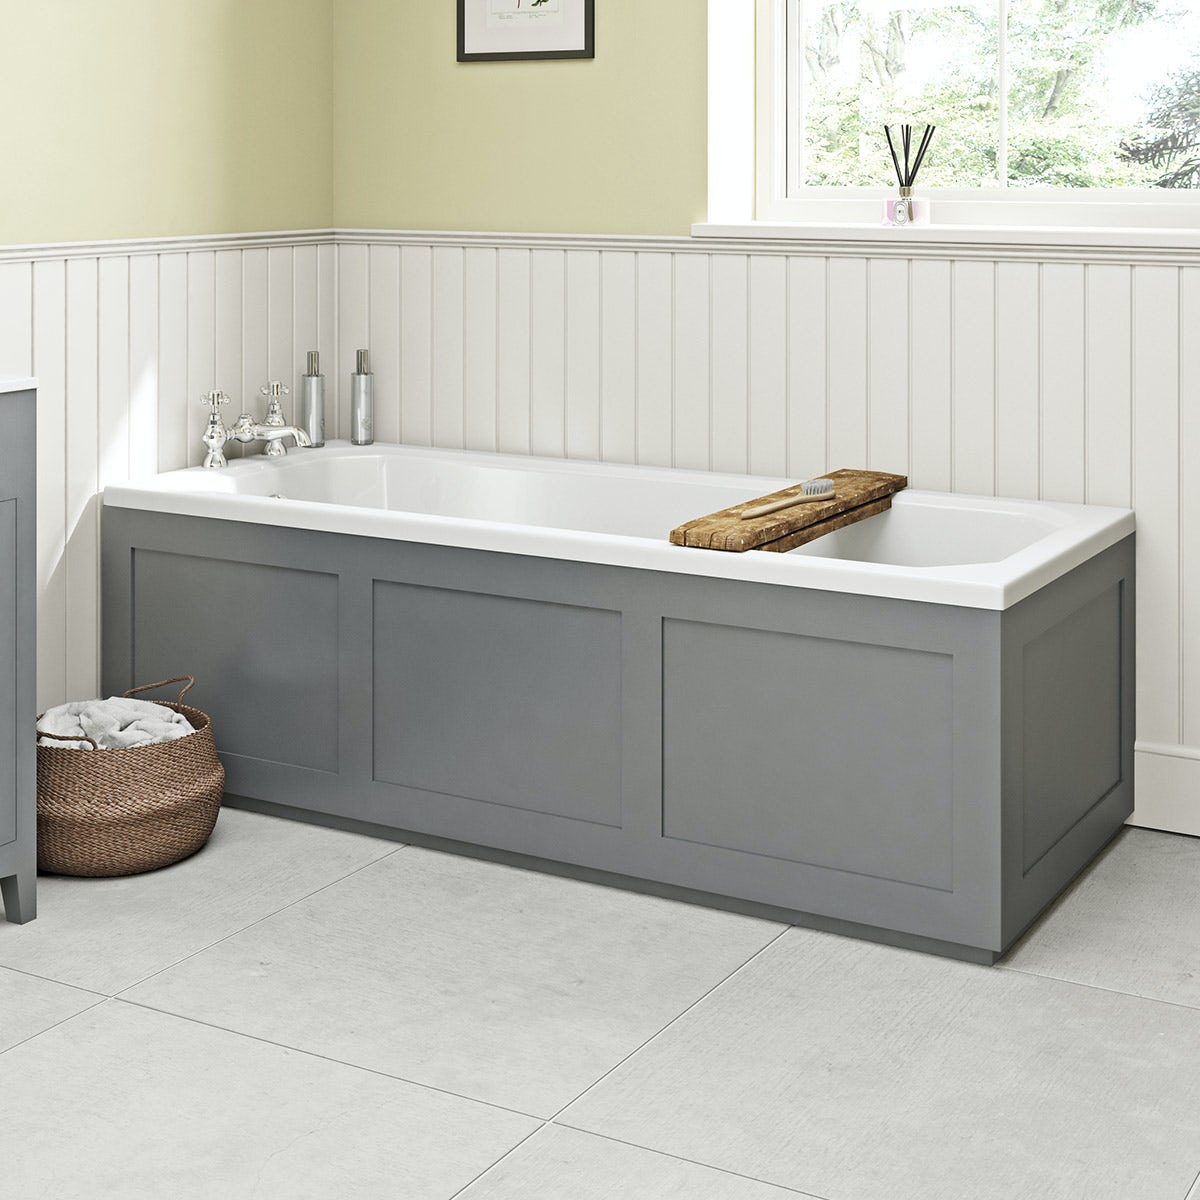 Grey And White Panelled Bathroom: The Bath Co. Camberley Satin Grey Wooden Straight Bath